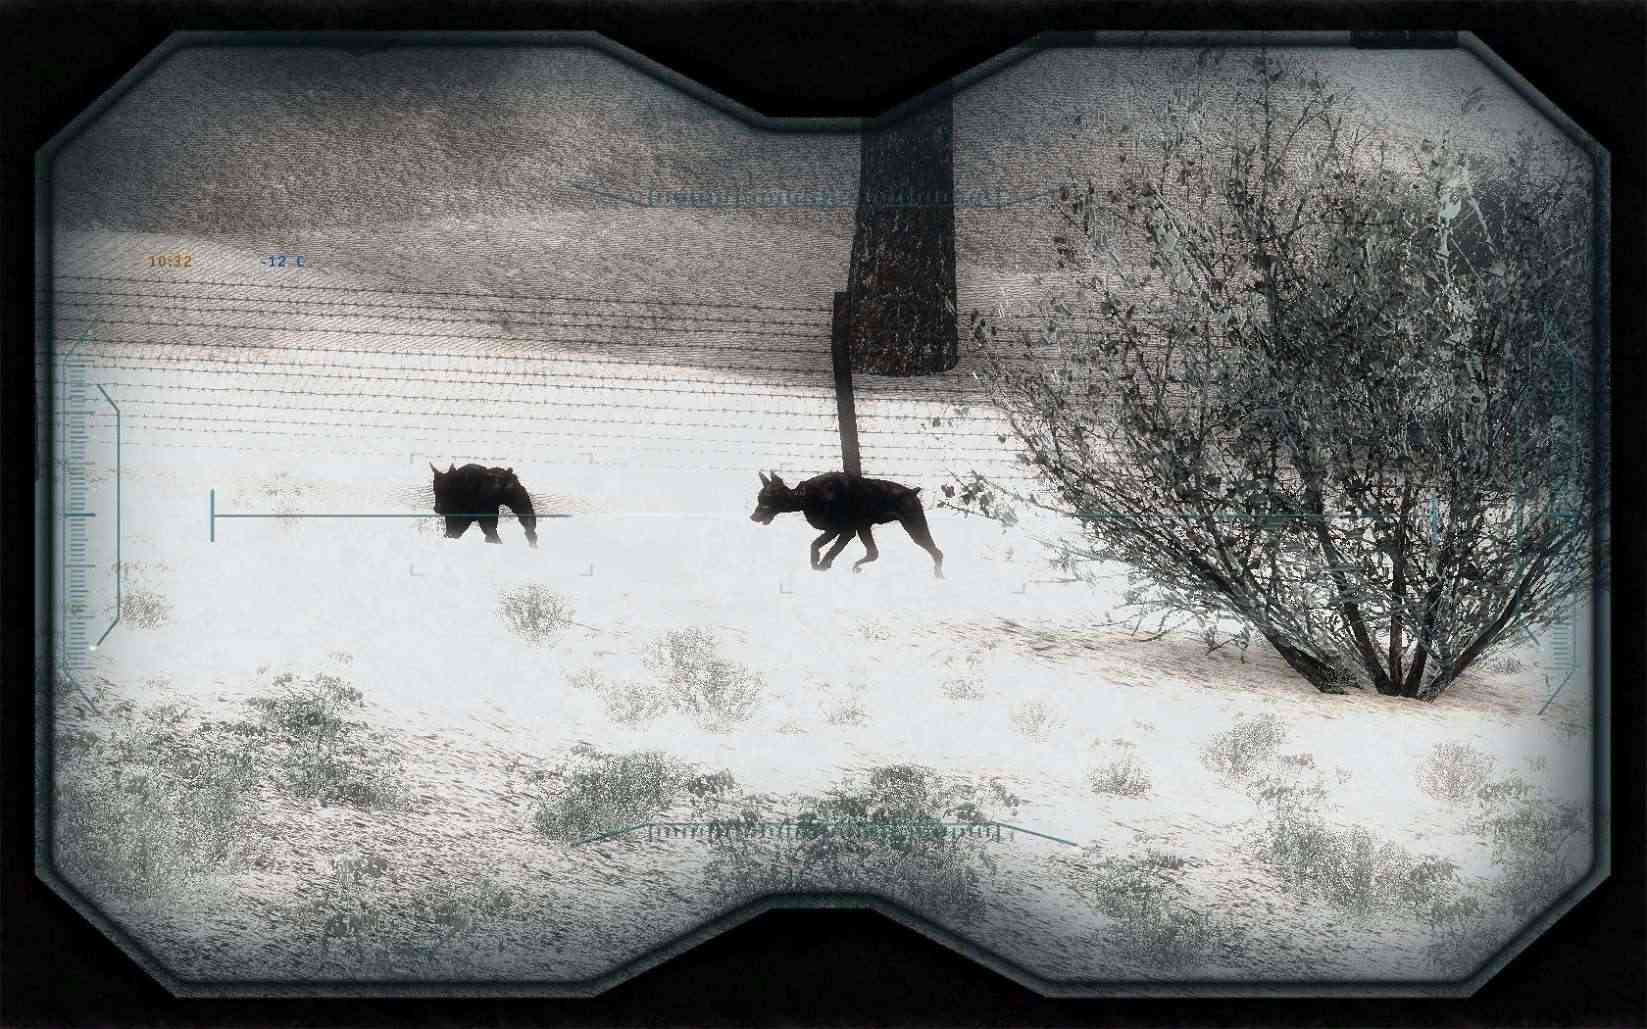 Nature Winter 2.3 Black Edition (eng 1.01 Deluxe) Images Gallery! Serie:1# D12